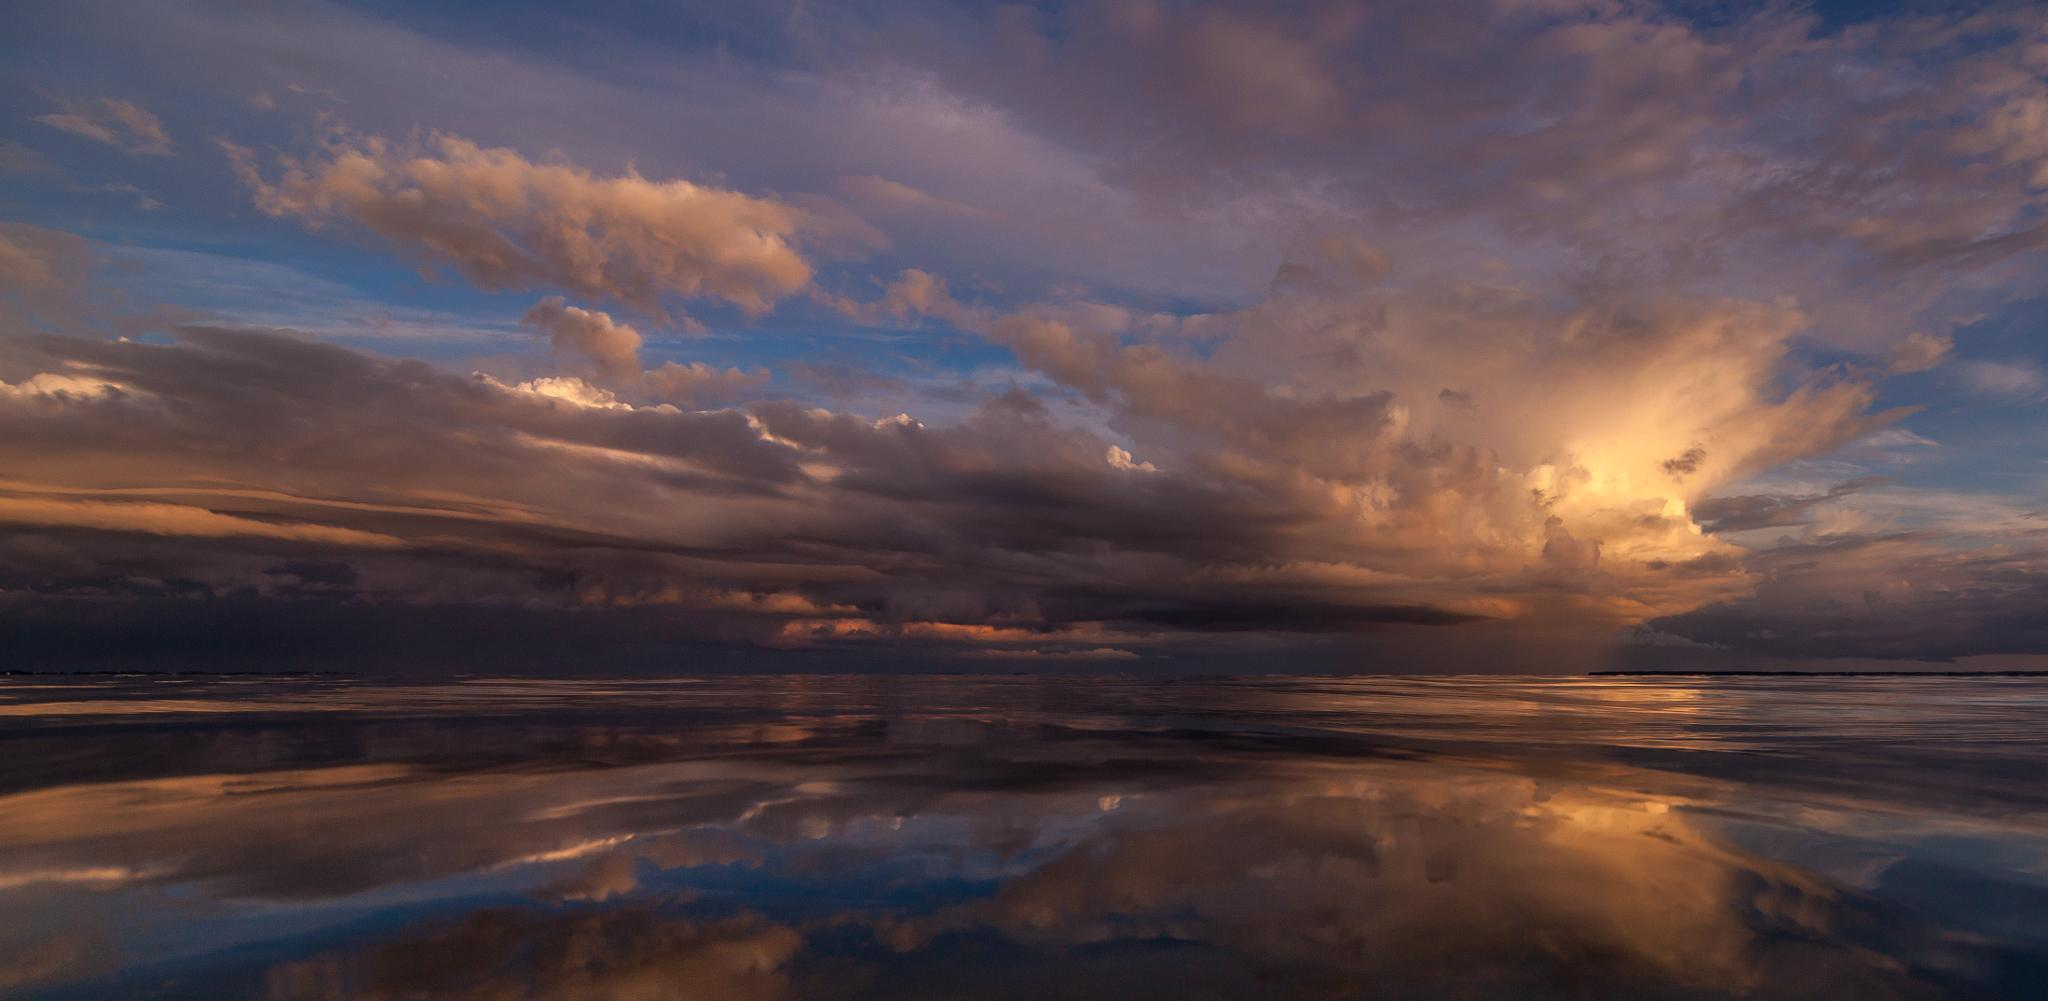 Cloud Reflection by wittrup91